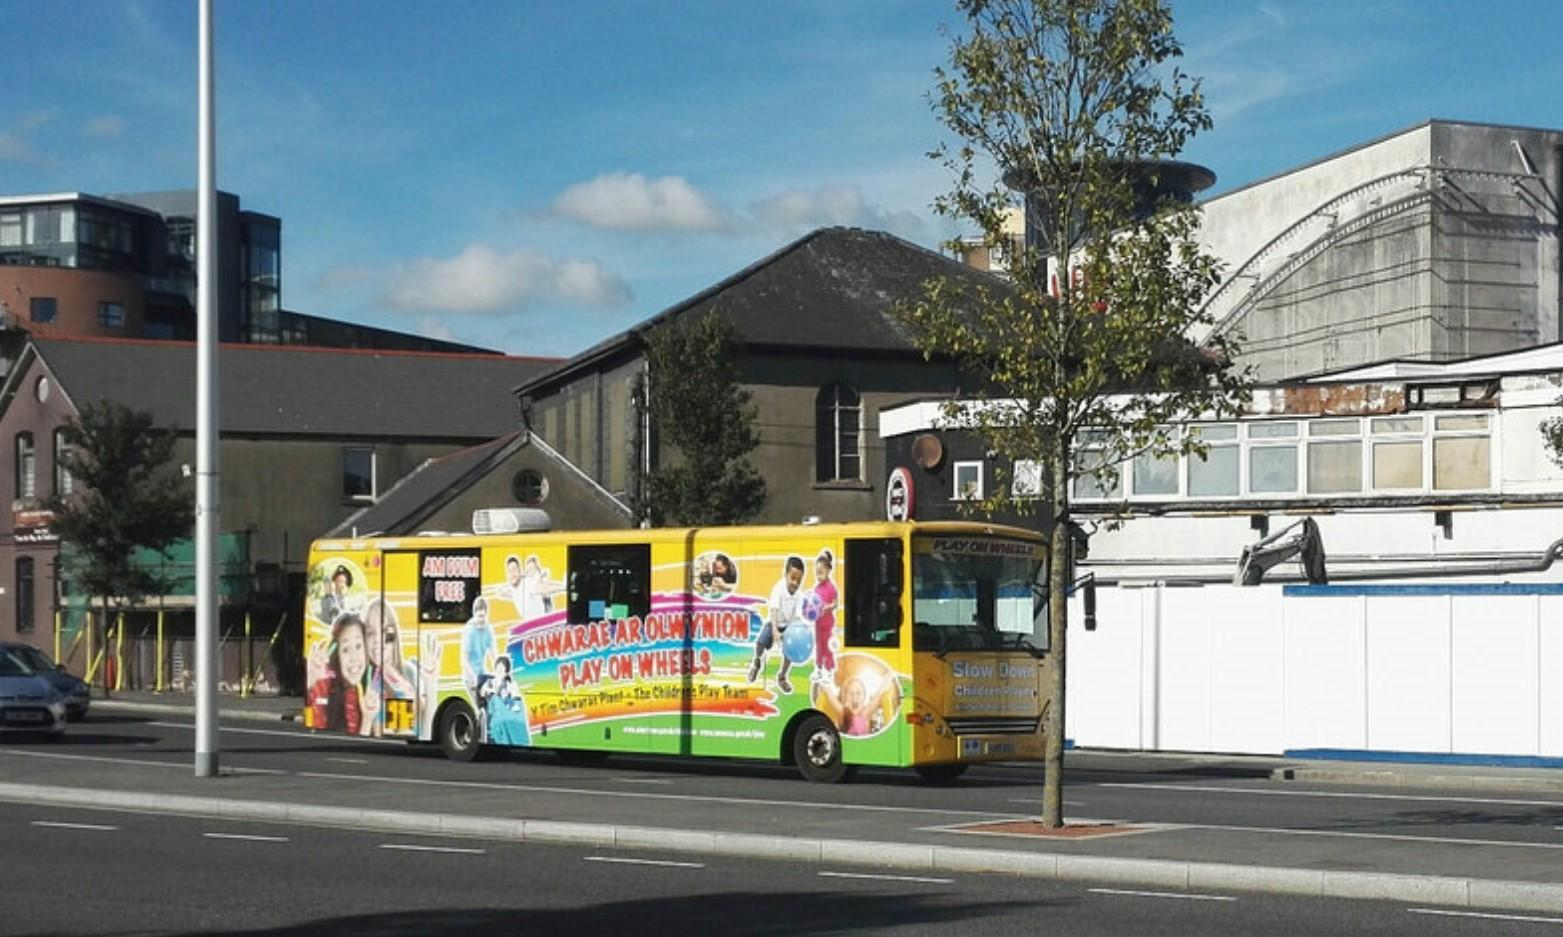 Swansea Play Bus in Scurlage